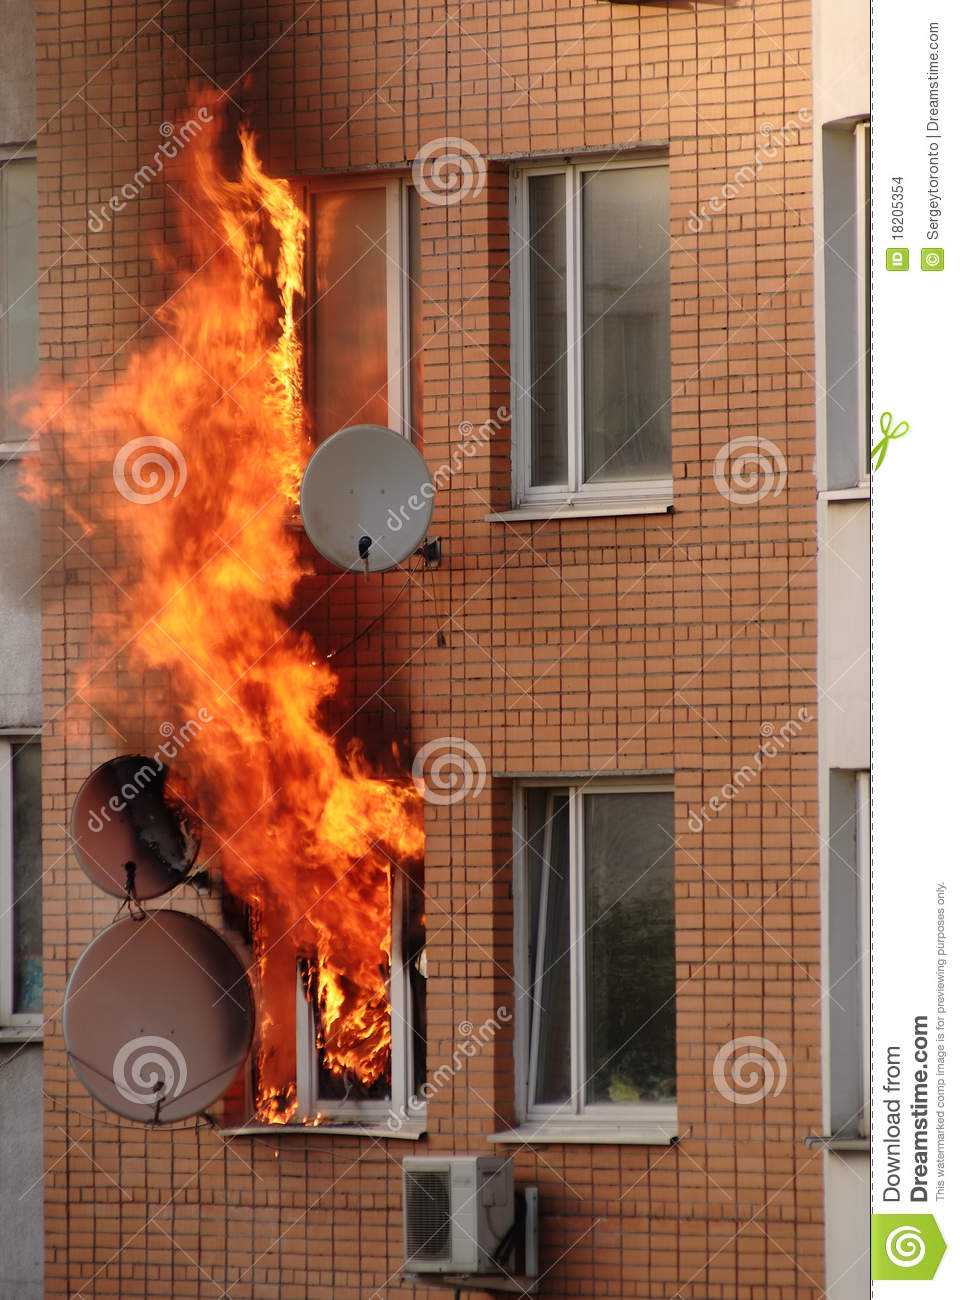 Fire In Building Stock Photo Image Of Fiery Accident